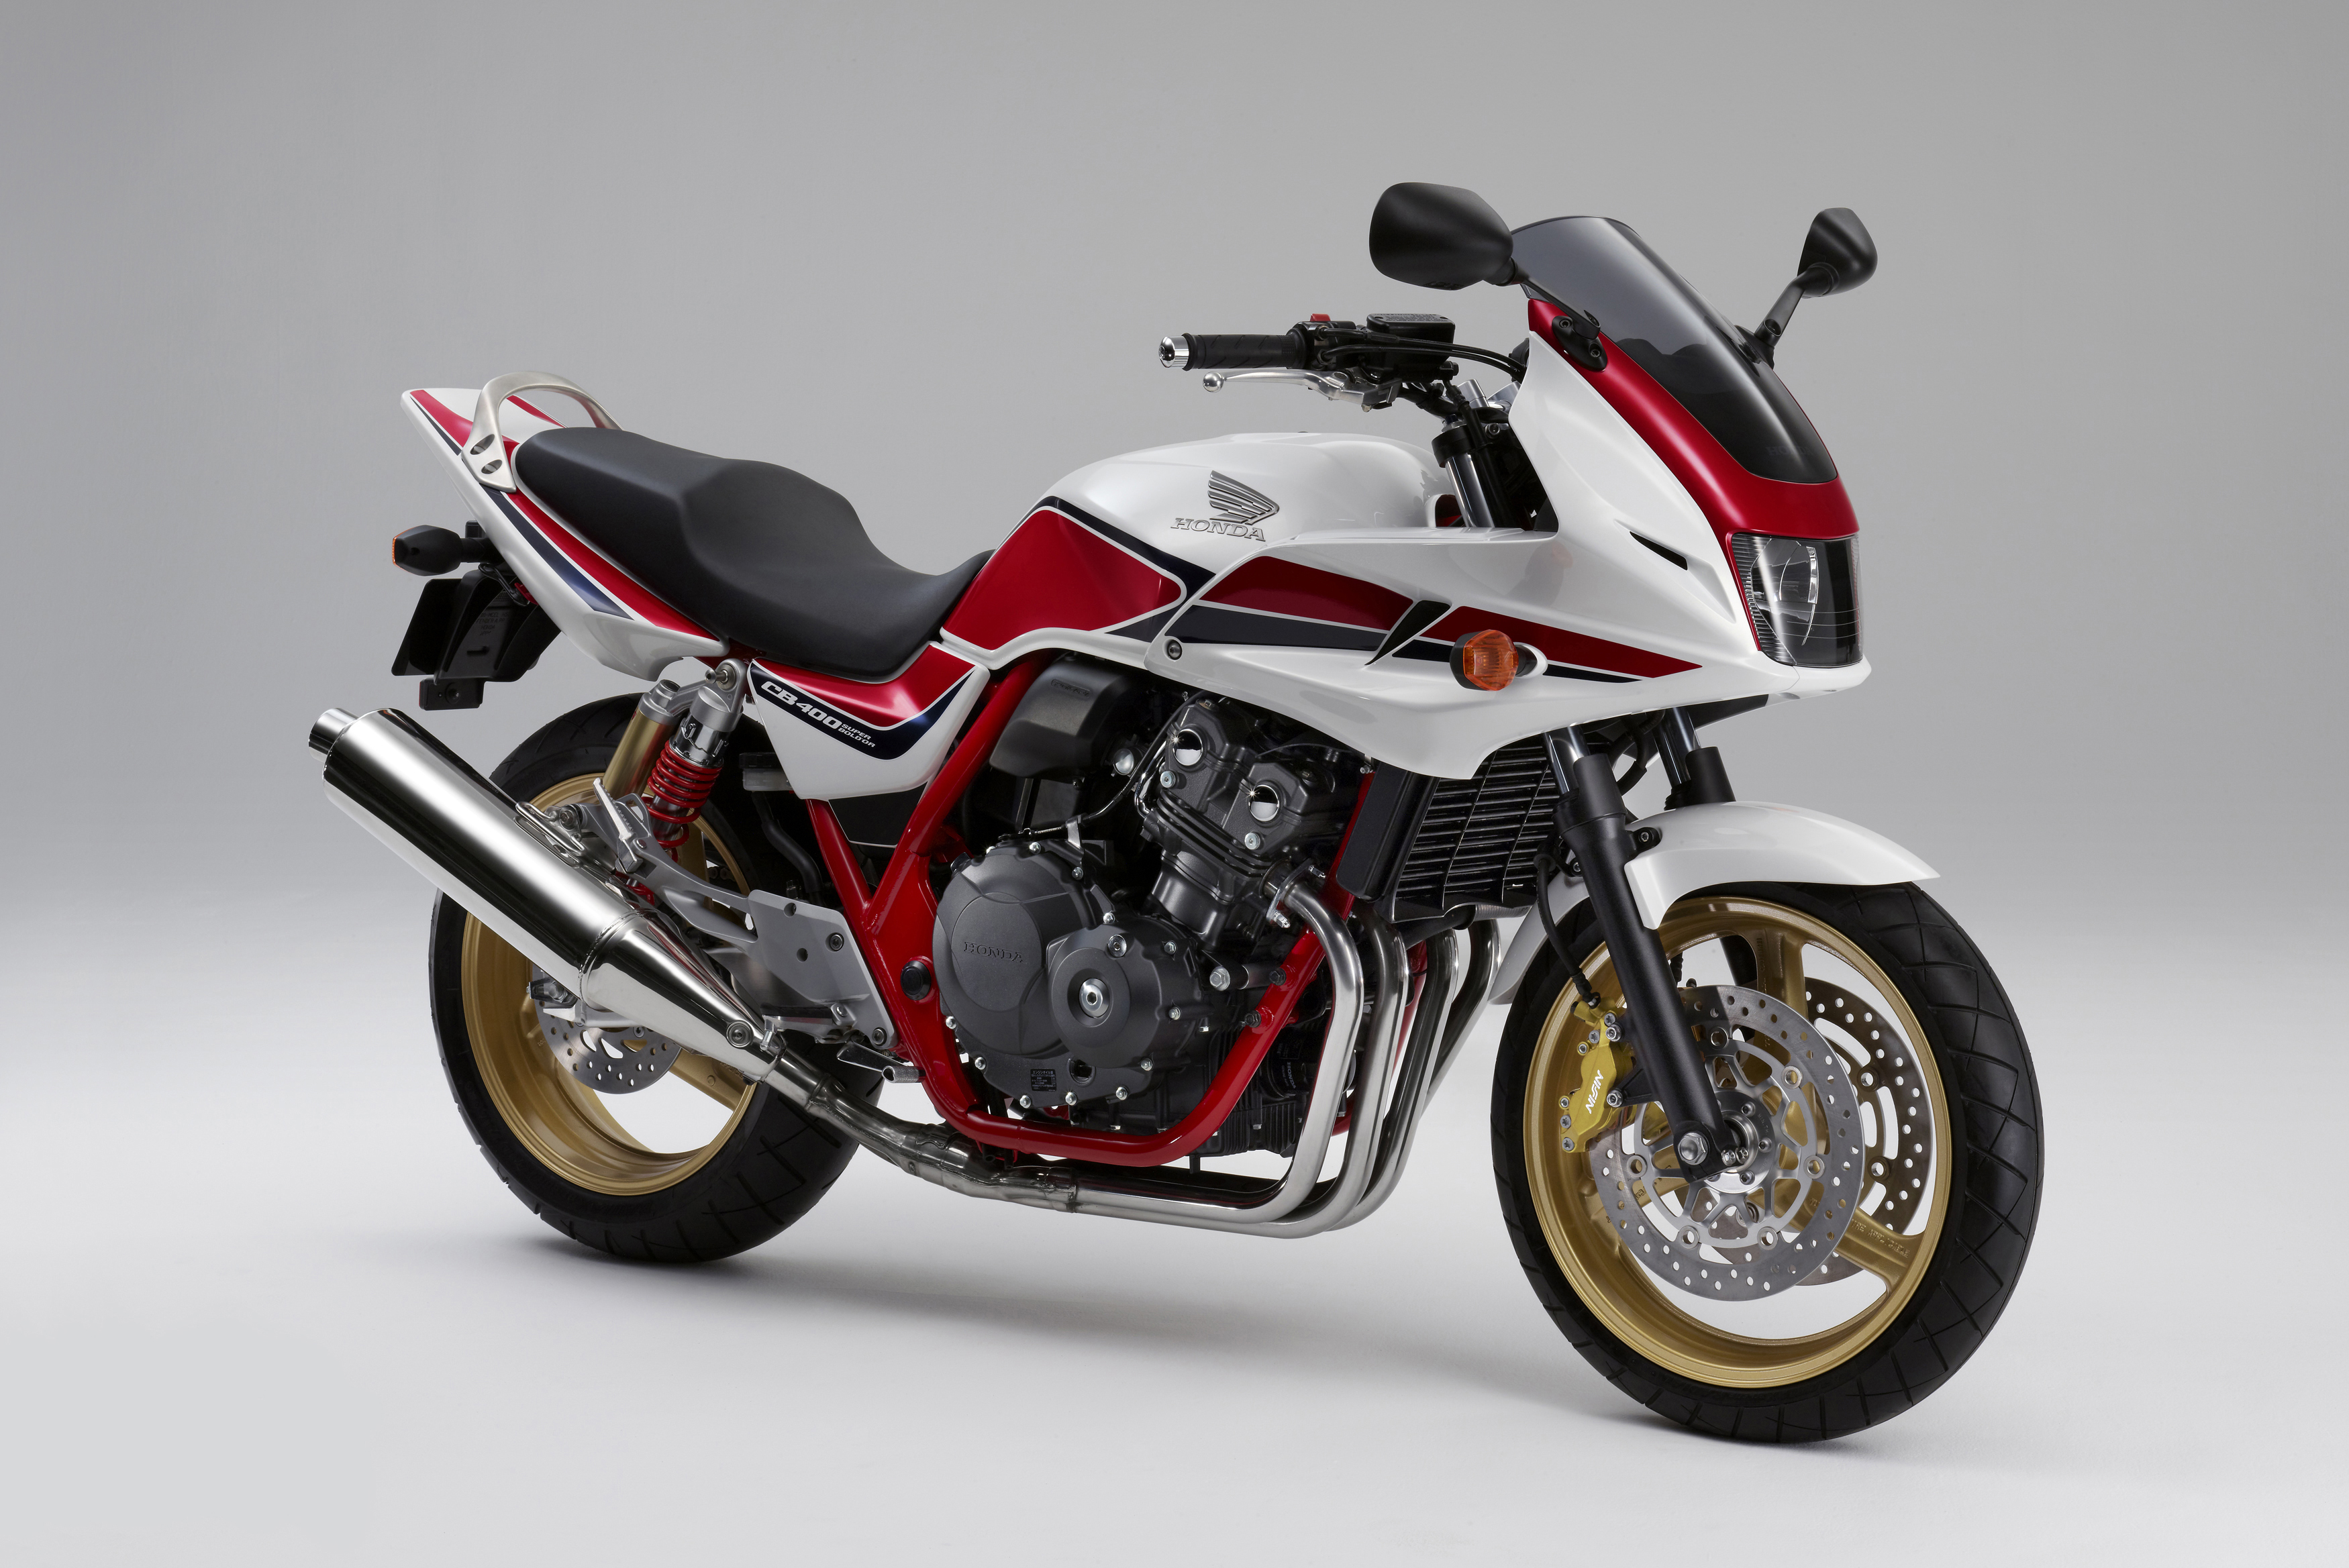 Honda Cb400 Super Four Special Edition Visordown